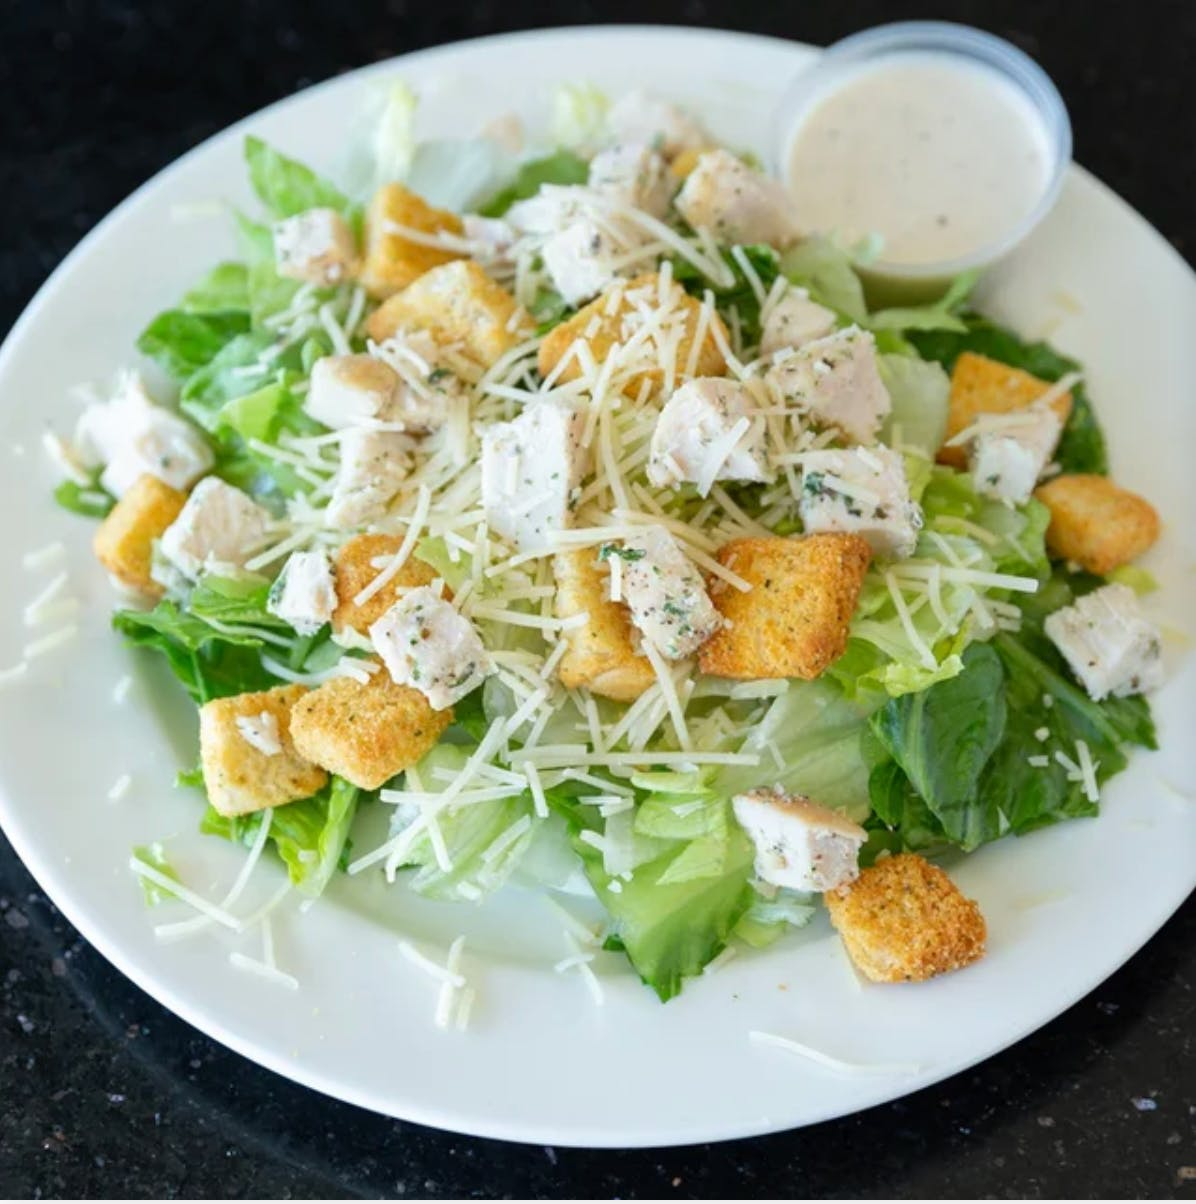 Chicken Caesar Salad from Aroma Pizza & Pasta in Lake Forest, CA